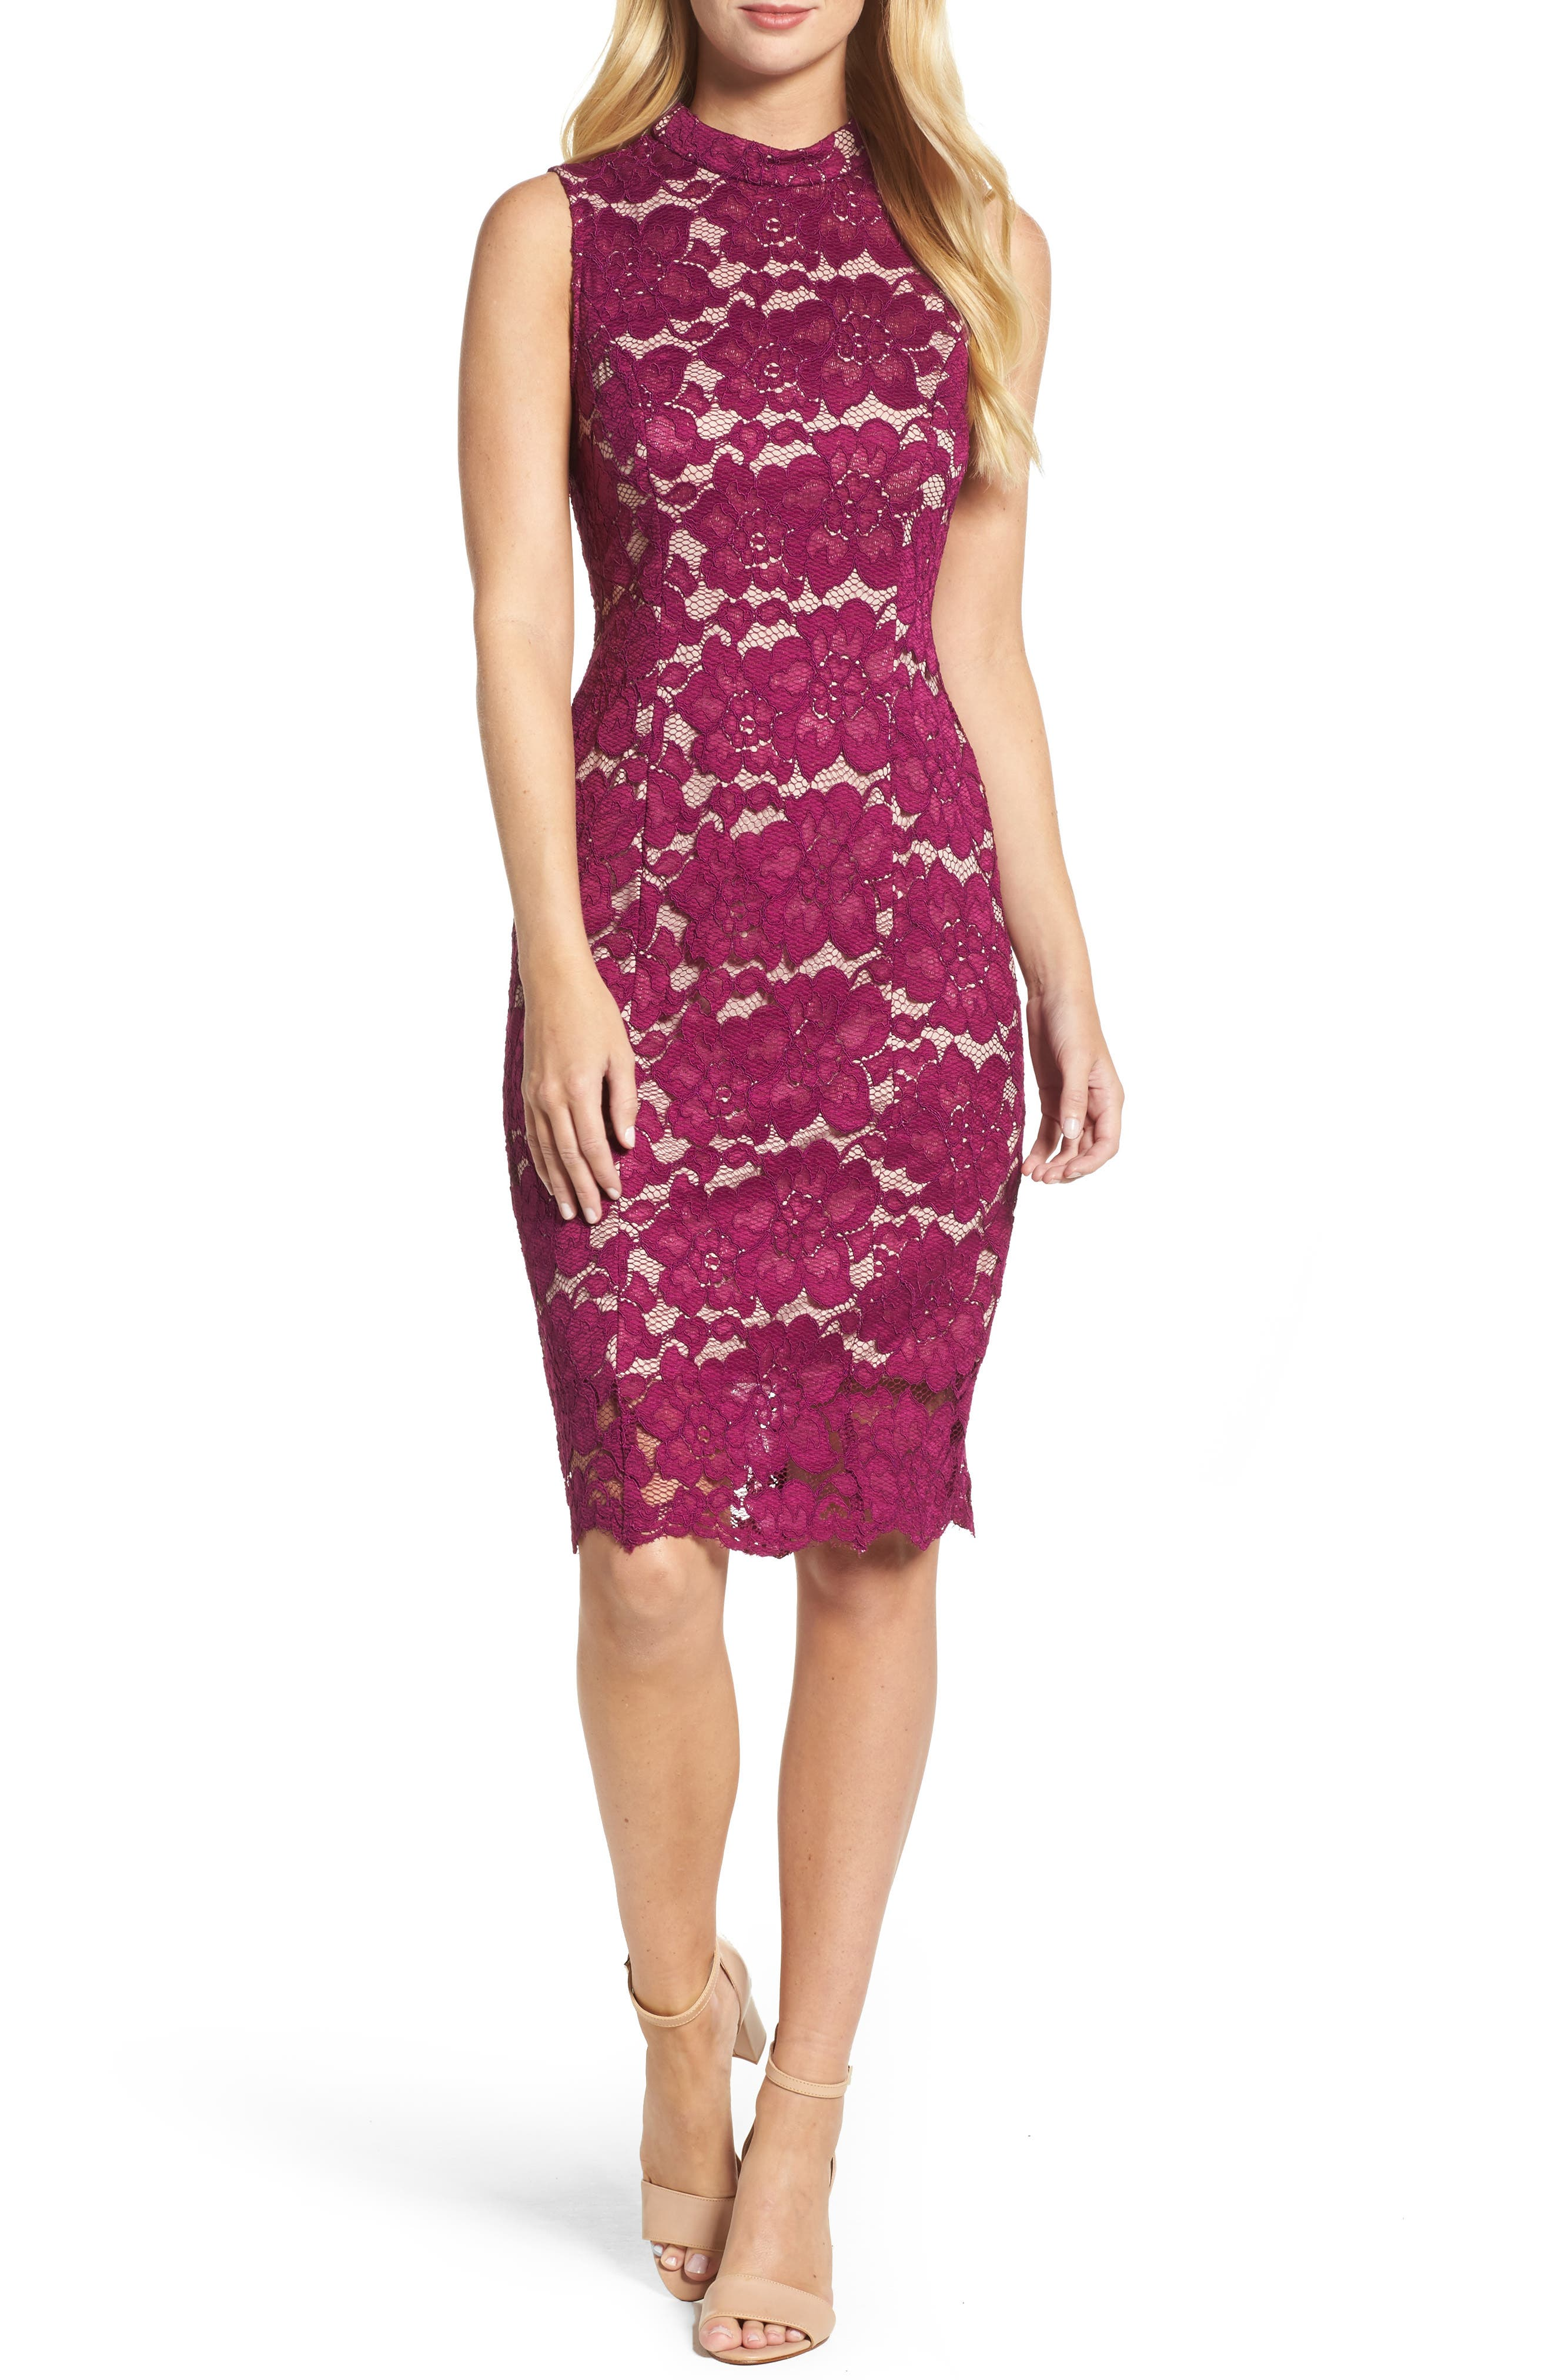 Twin Flower Lace Sheath Dress,                         Main,                         color, Burgundy